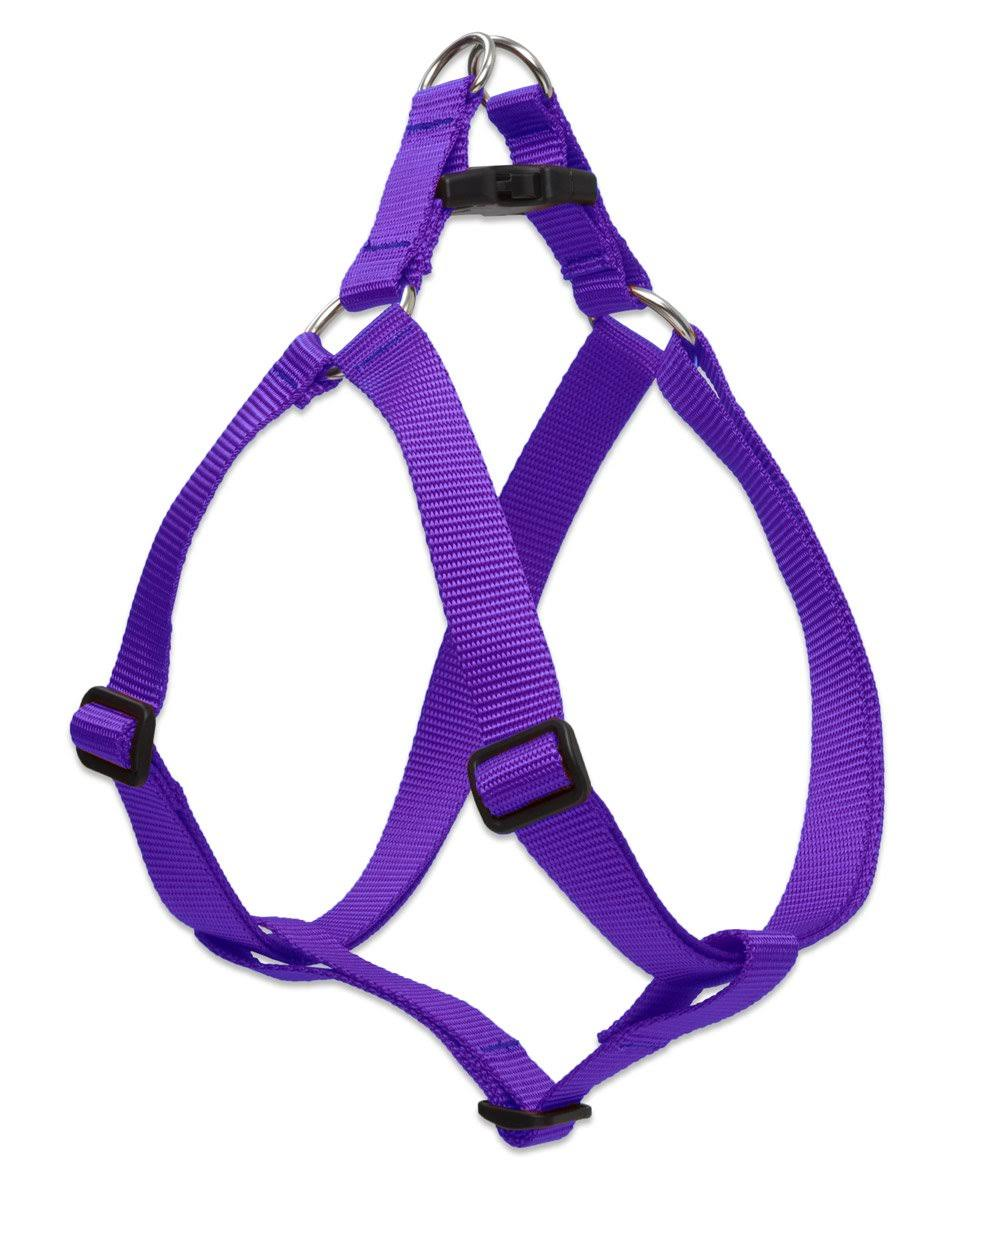 Lupine Nylon Dog Harness Step in Purple 19-28 inch